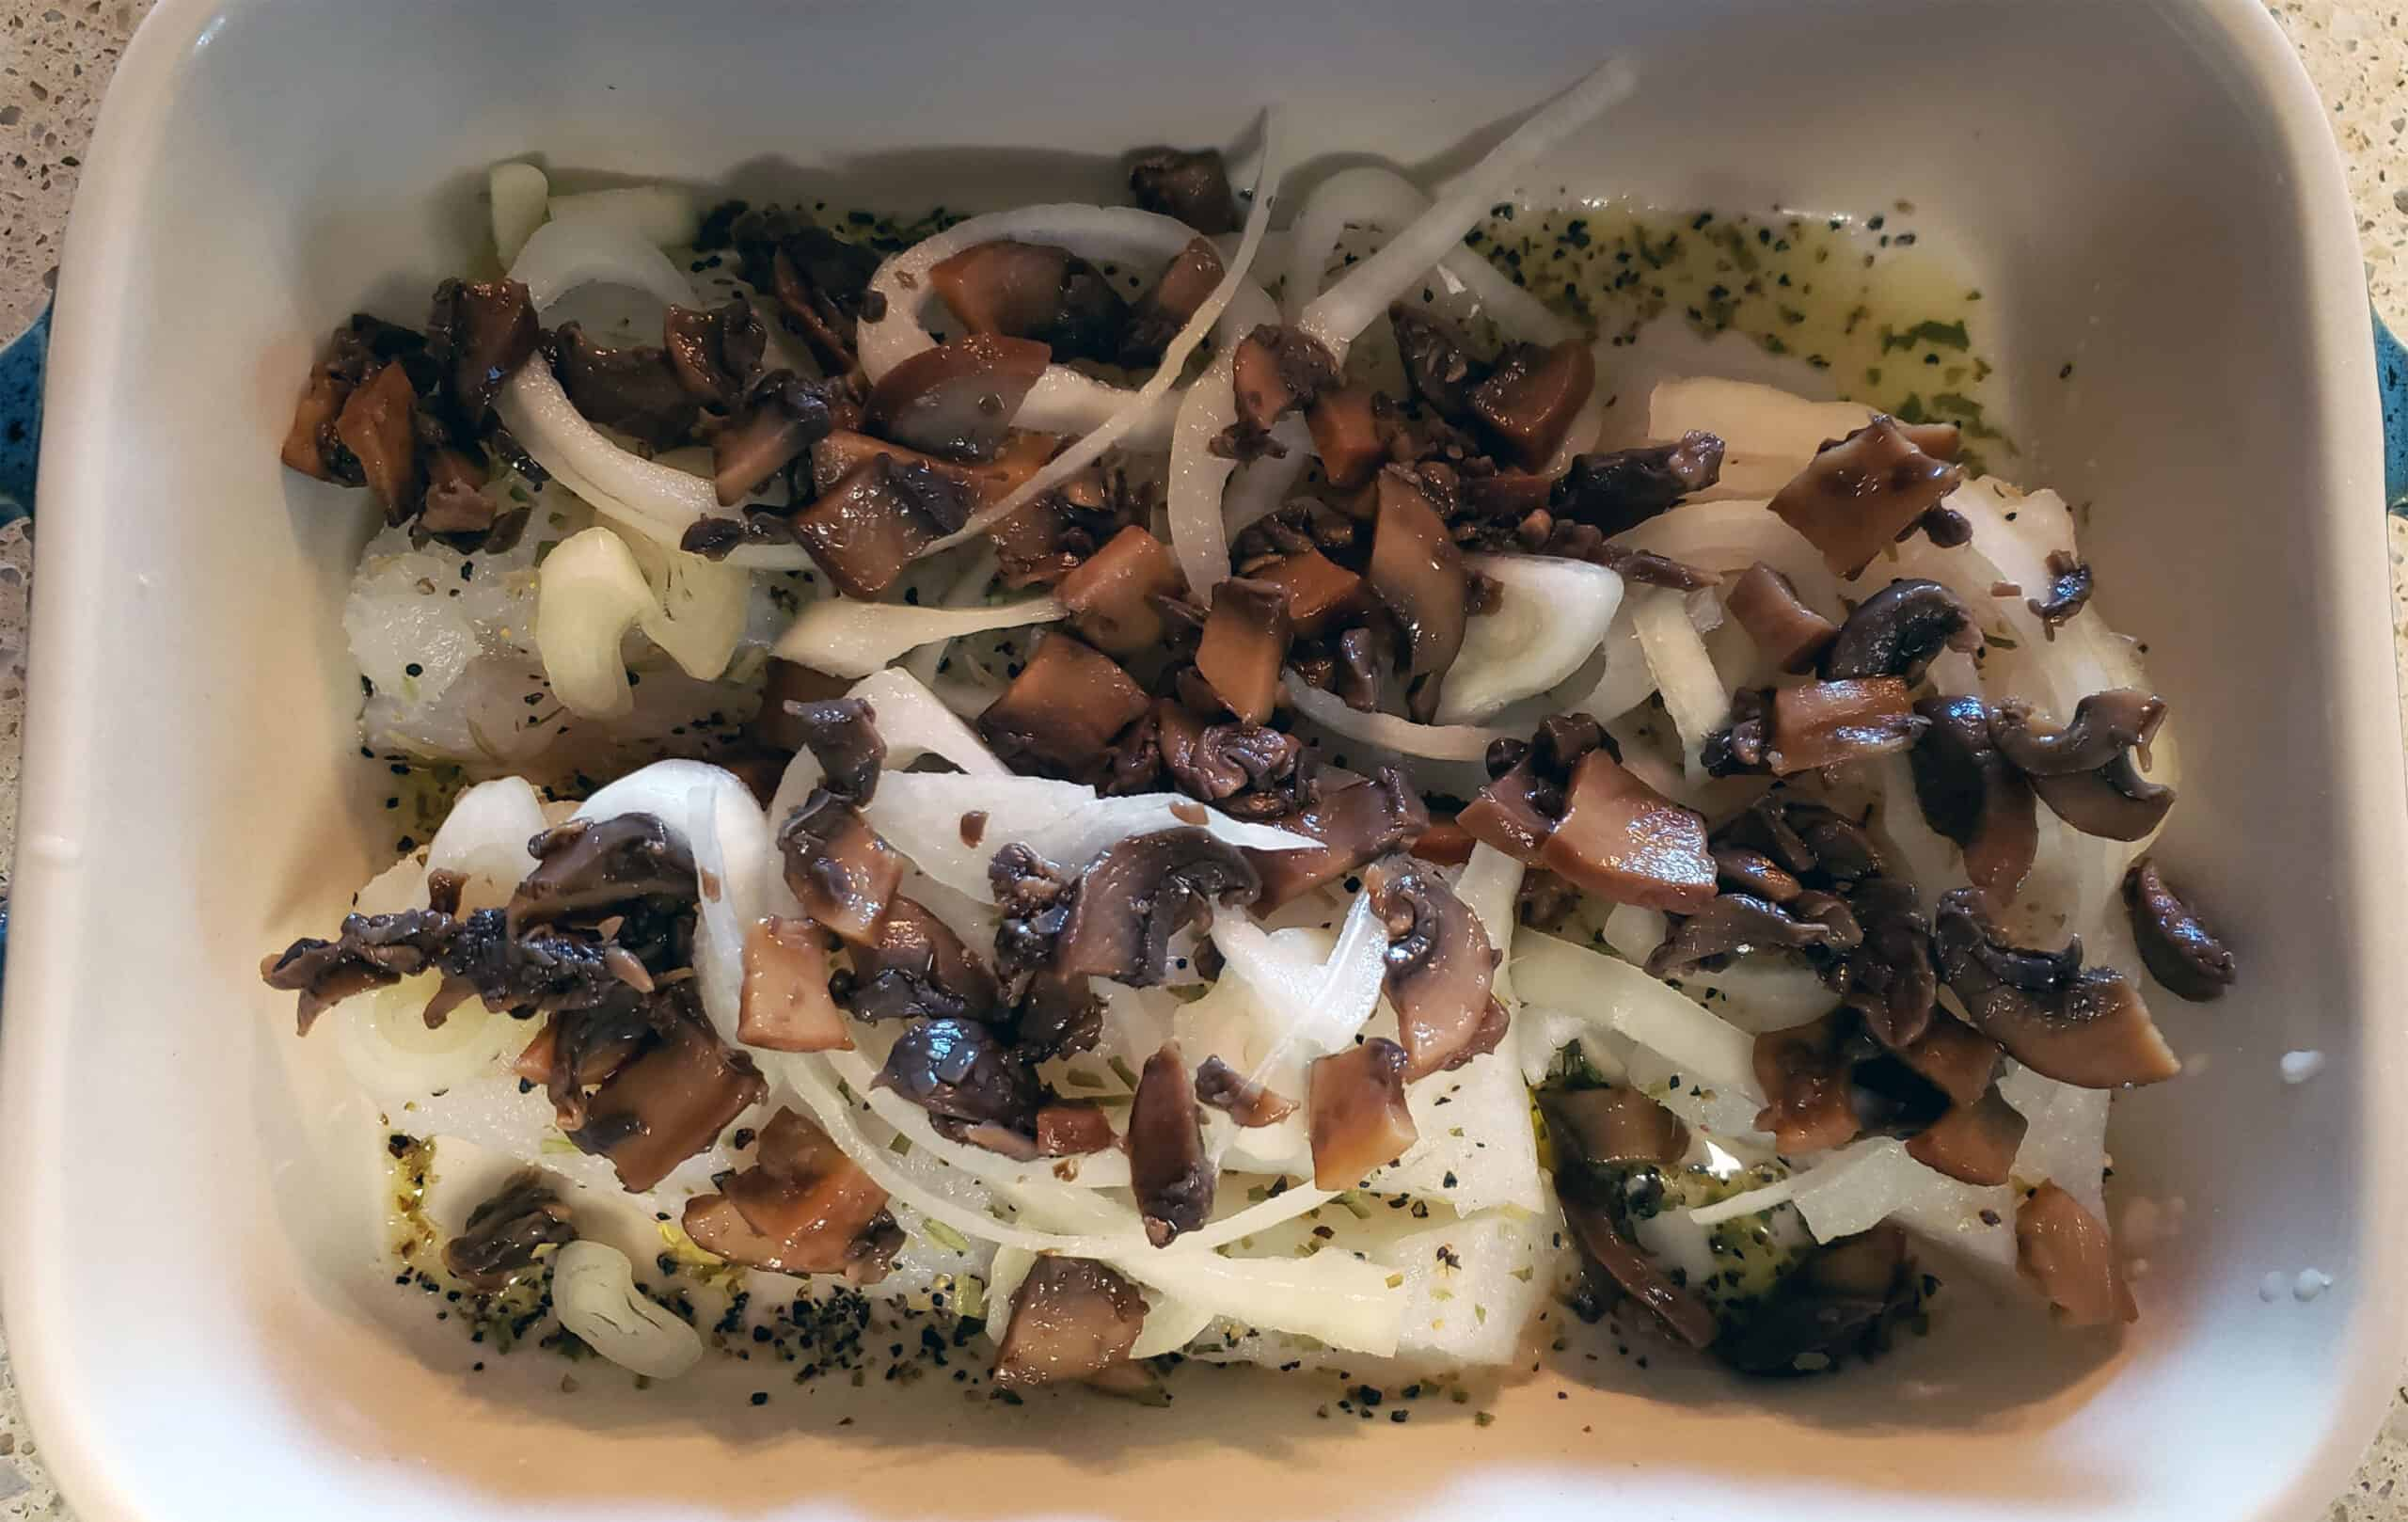 tilapia with mushrooms and onions in baking dish